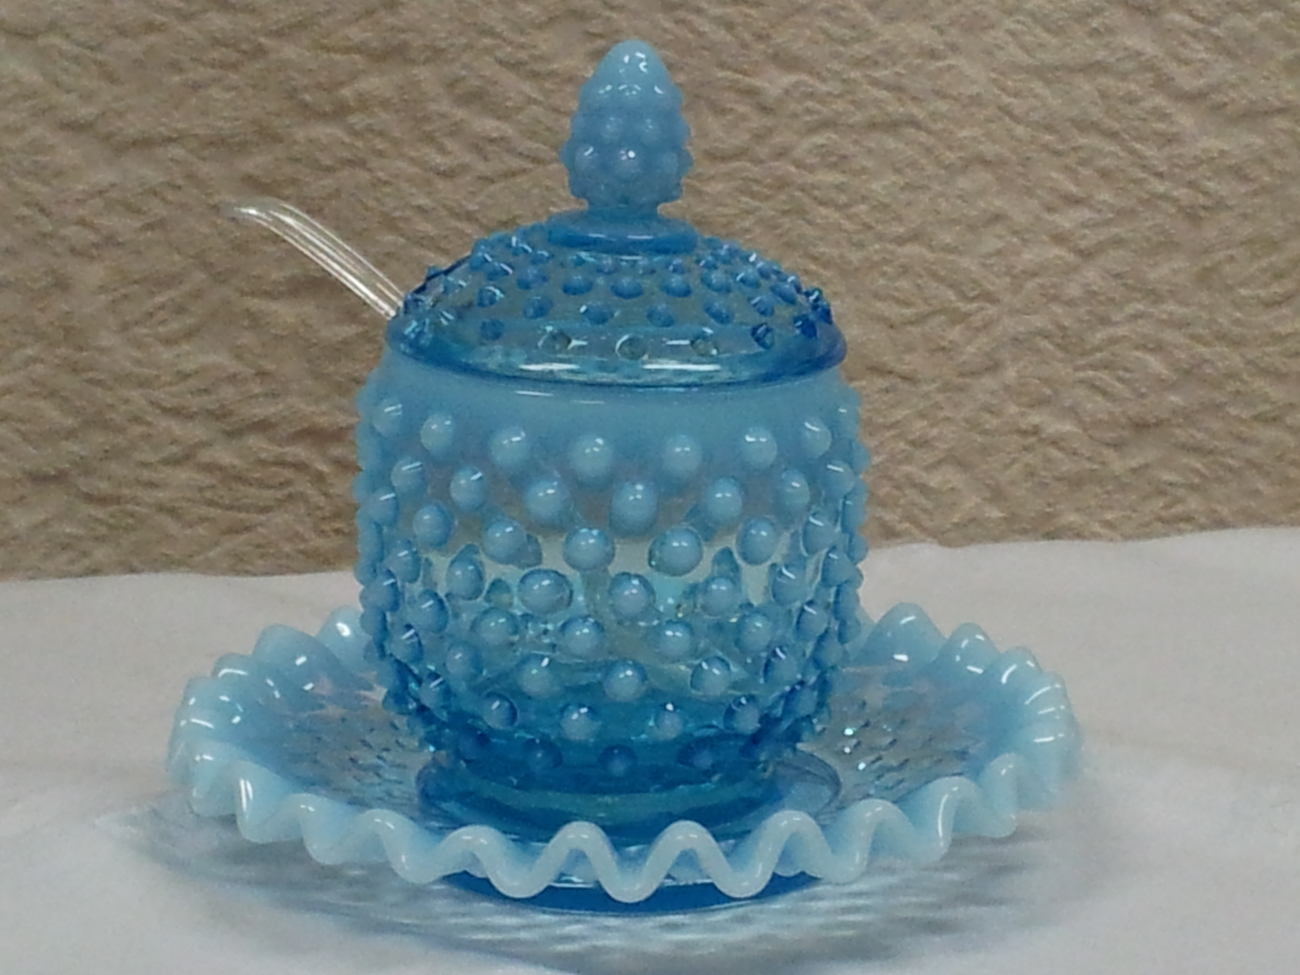 Fenton Blue Hobnail Covered Marmalade Jar and Plate